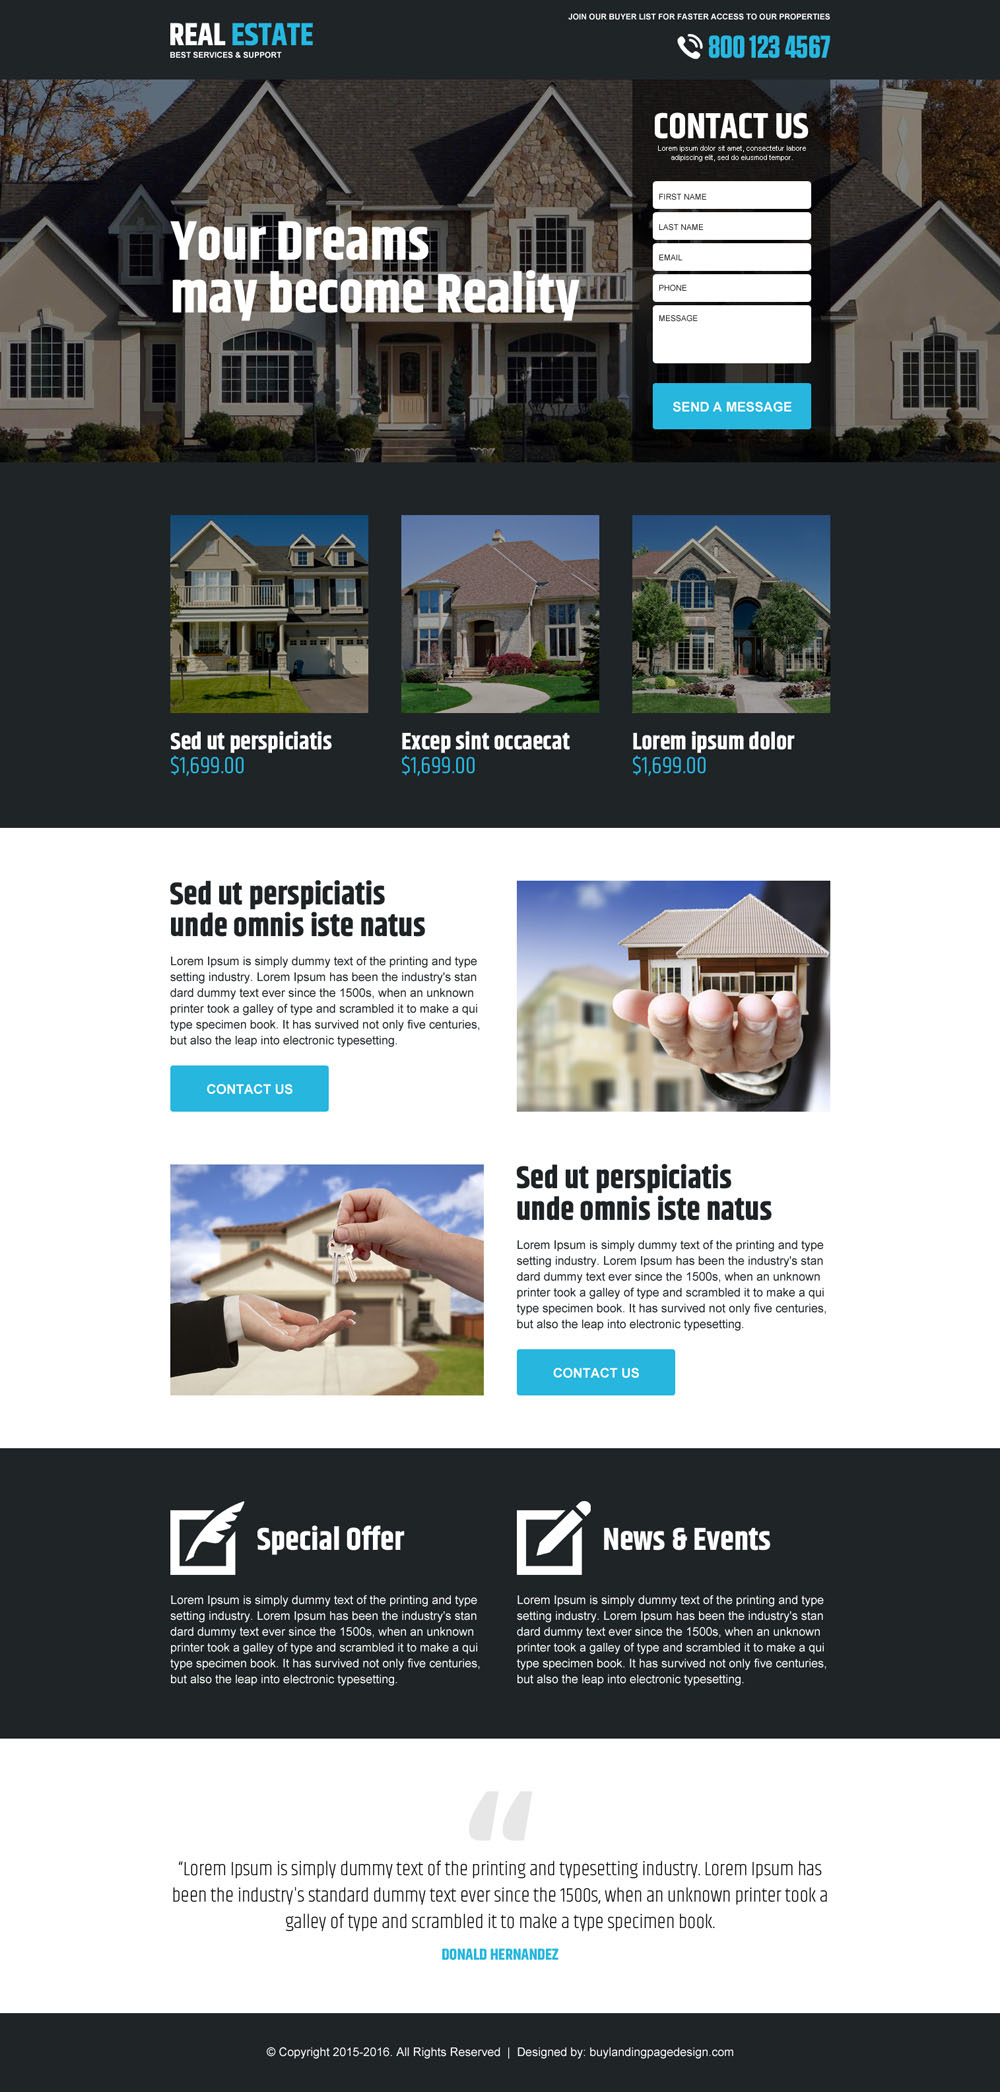 best-real-estate-service-support-lead-gen-converting-landing-page-design-014